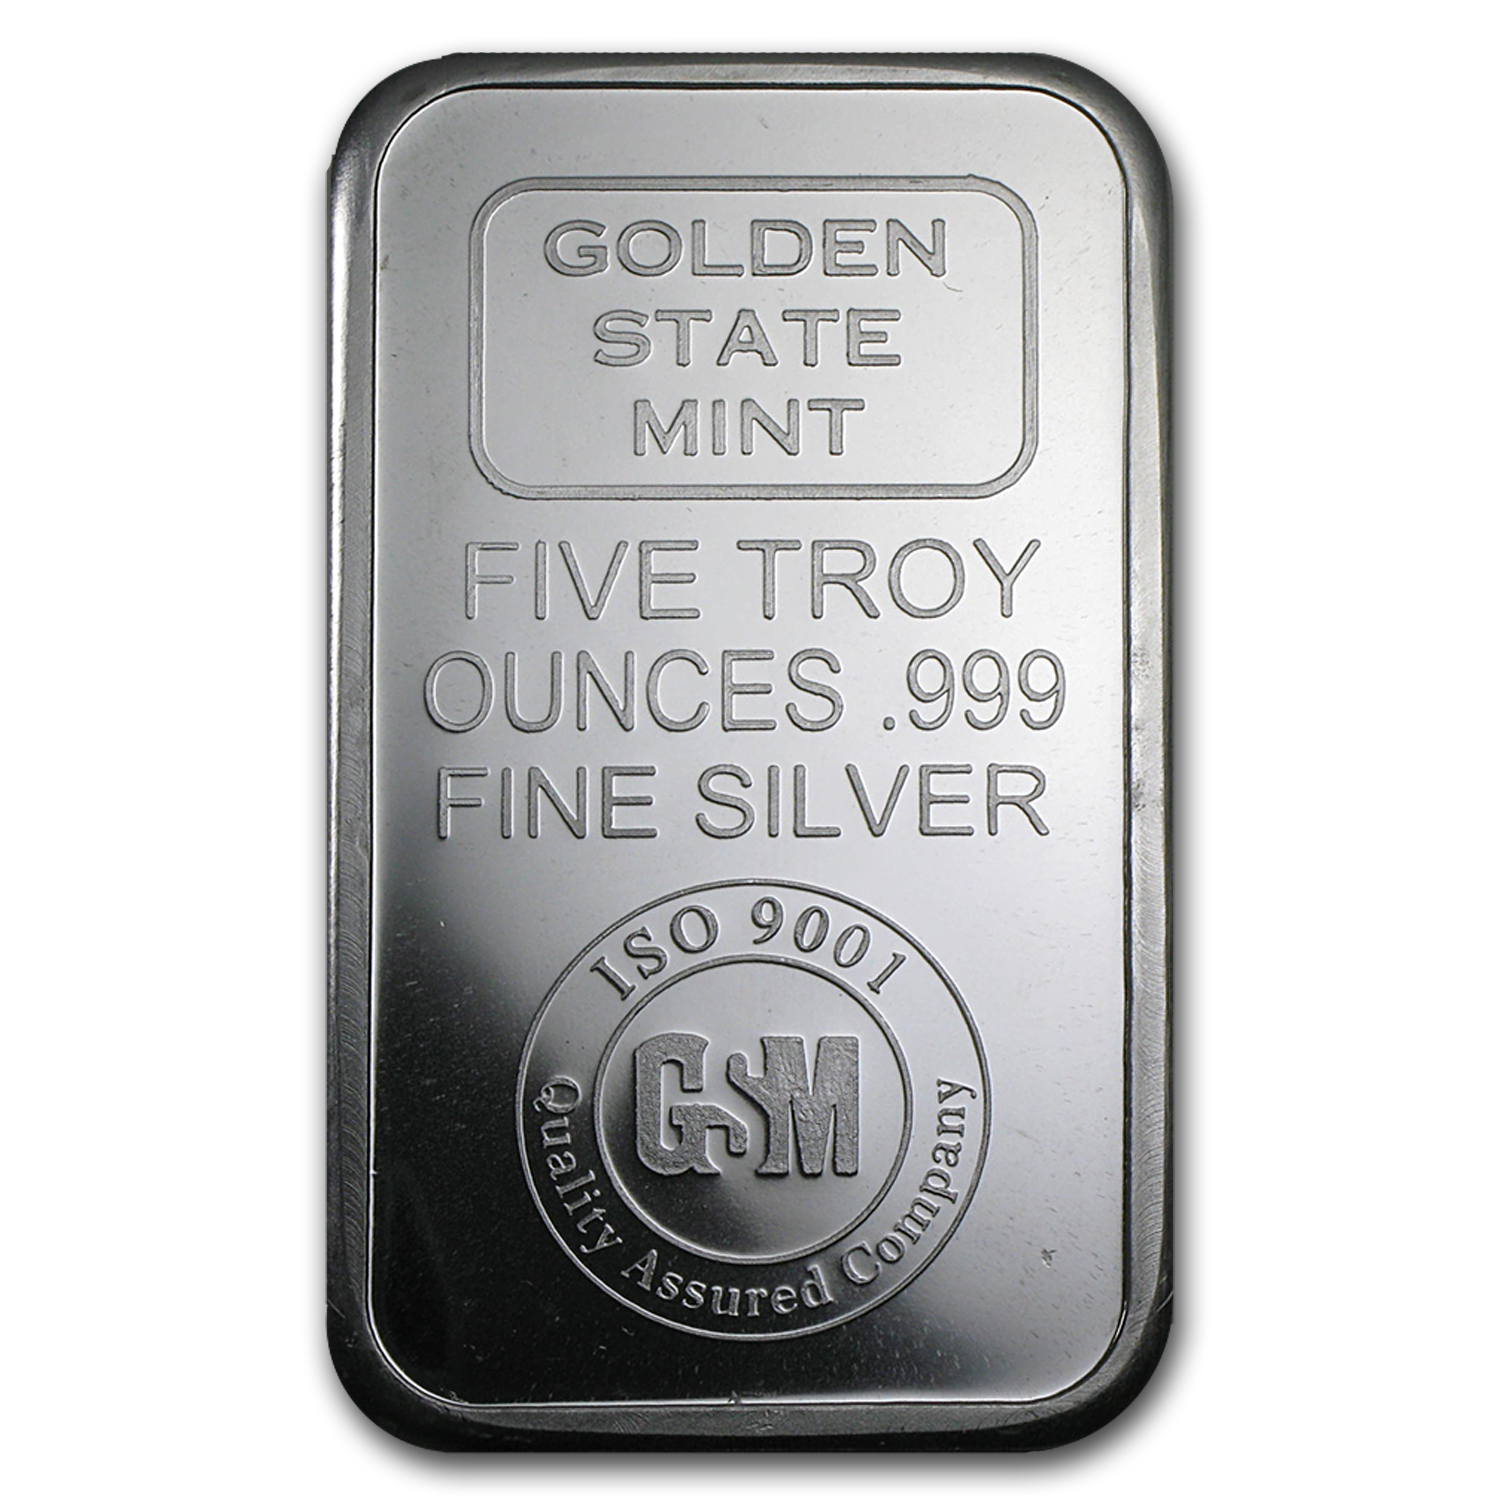 5 oz Silver Bar - Golden State Mint (ISO)